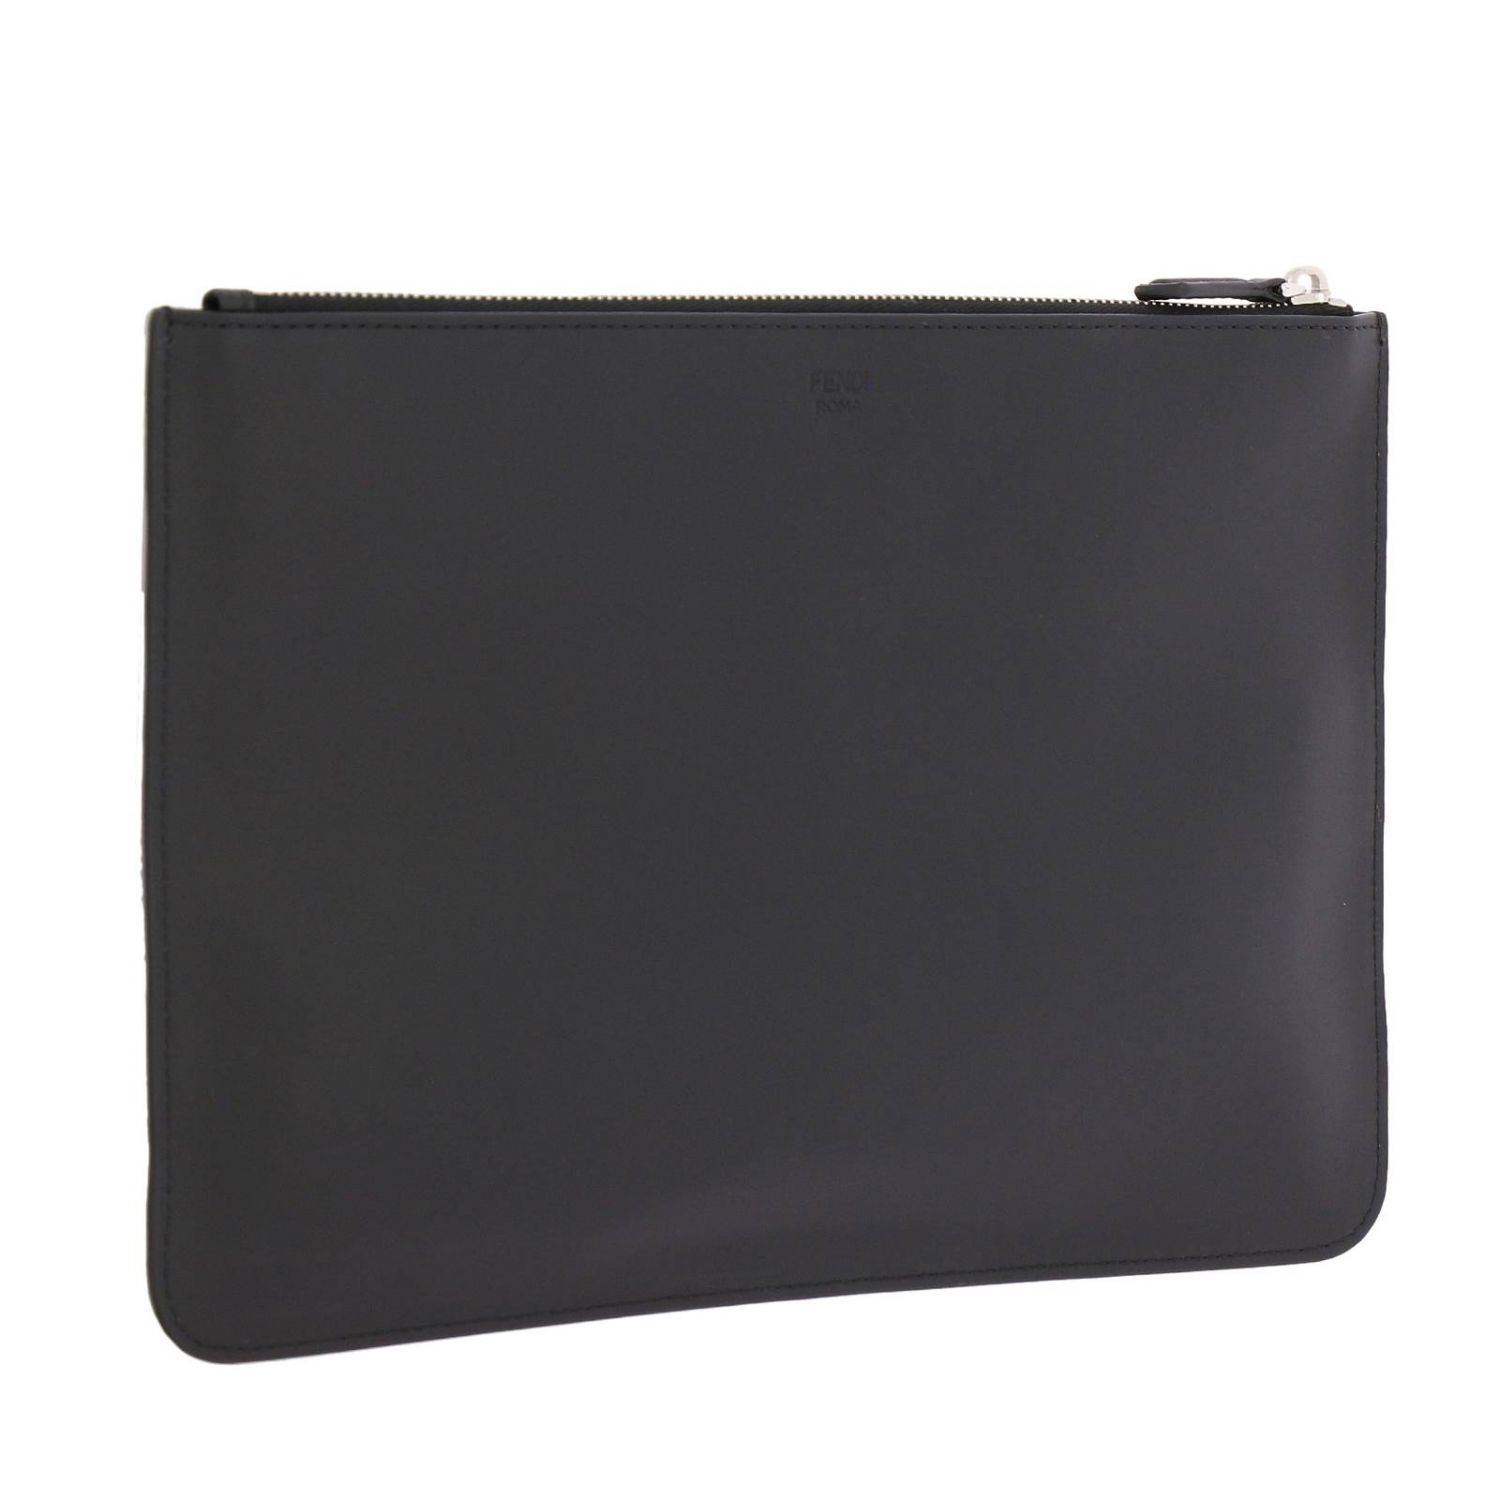 Fendi Monster Eyes clutch bag in smooth leather with maxi metallic Eyes Bag Bugs black 3